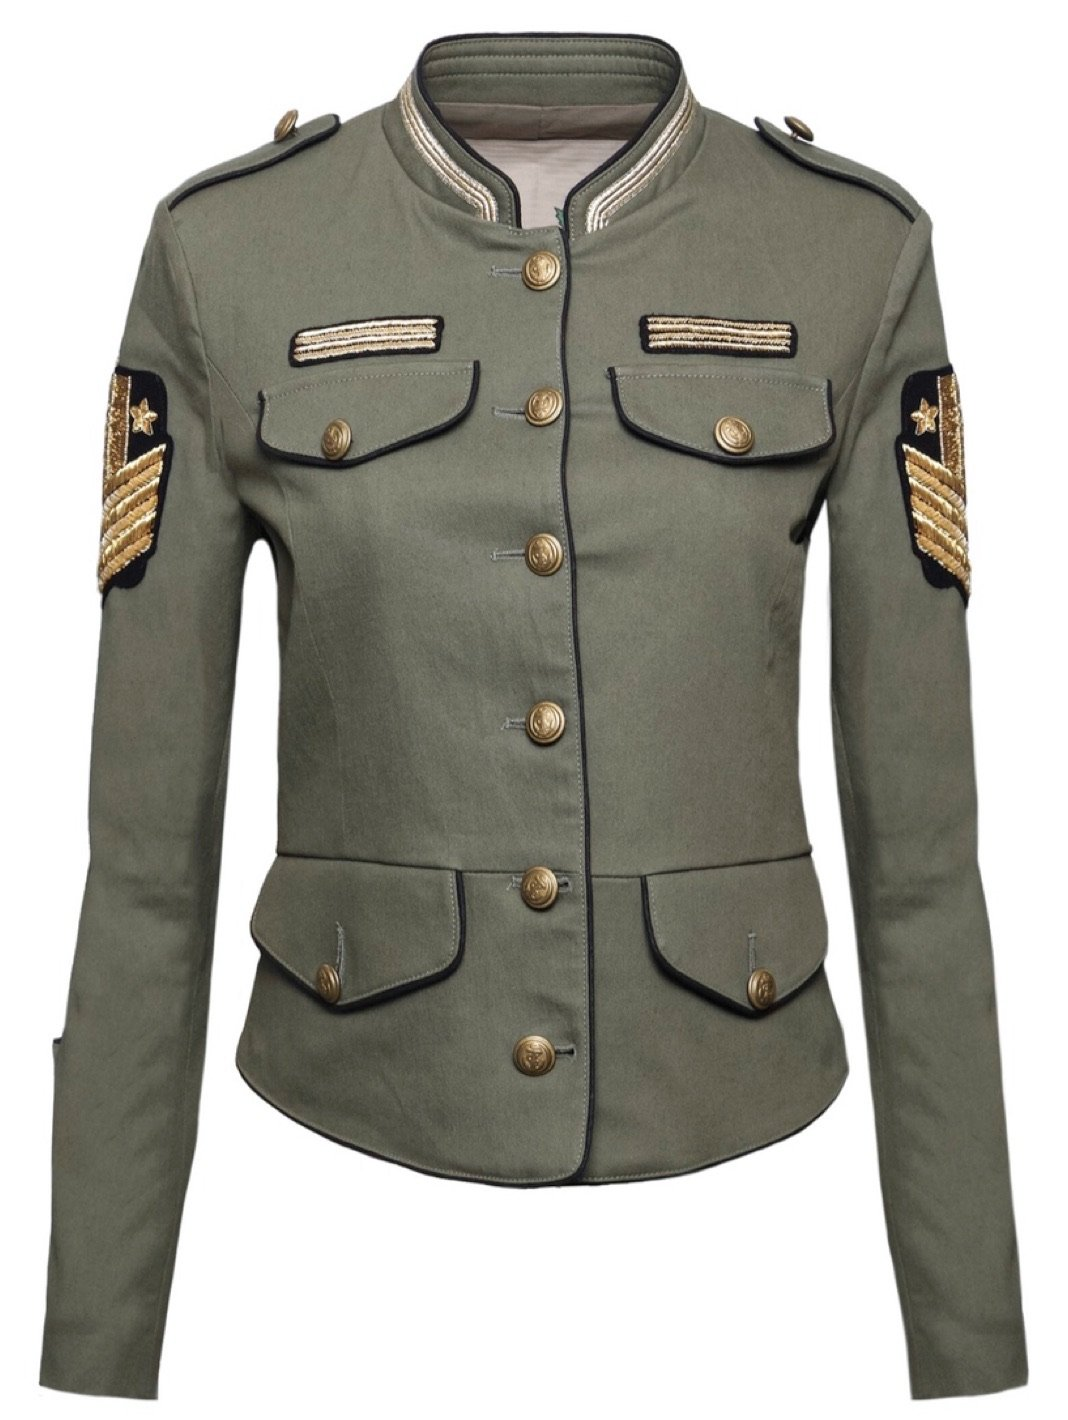 Military-Style Patched Jacket - The Bobby Boga